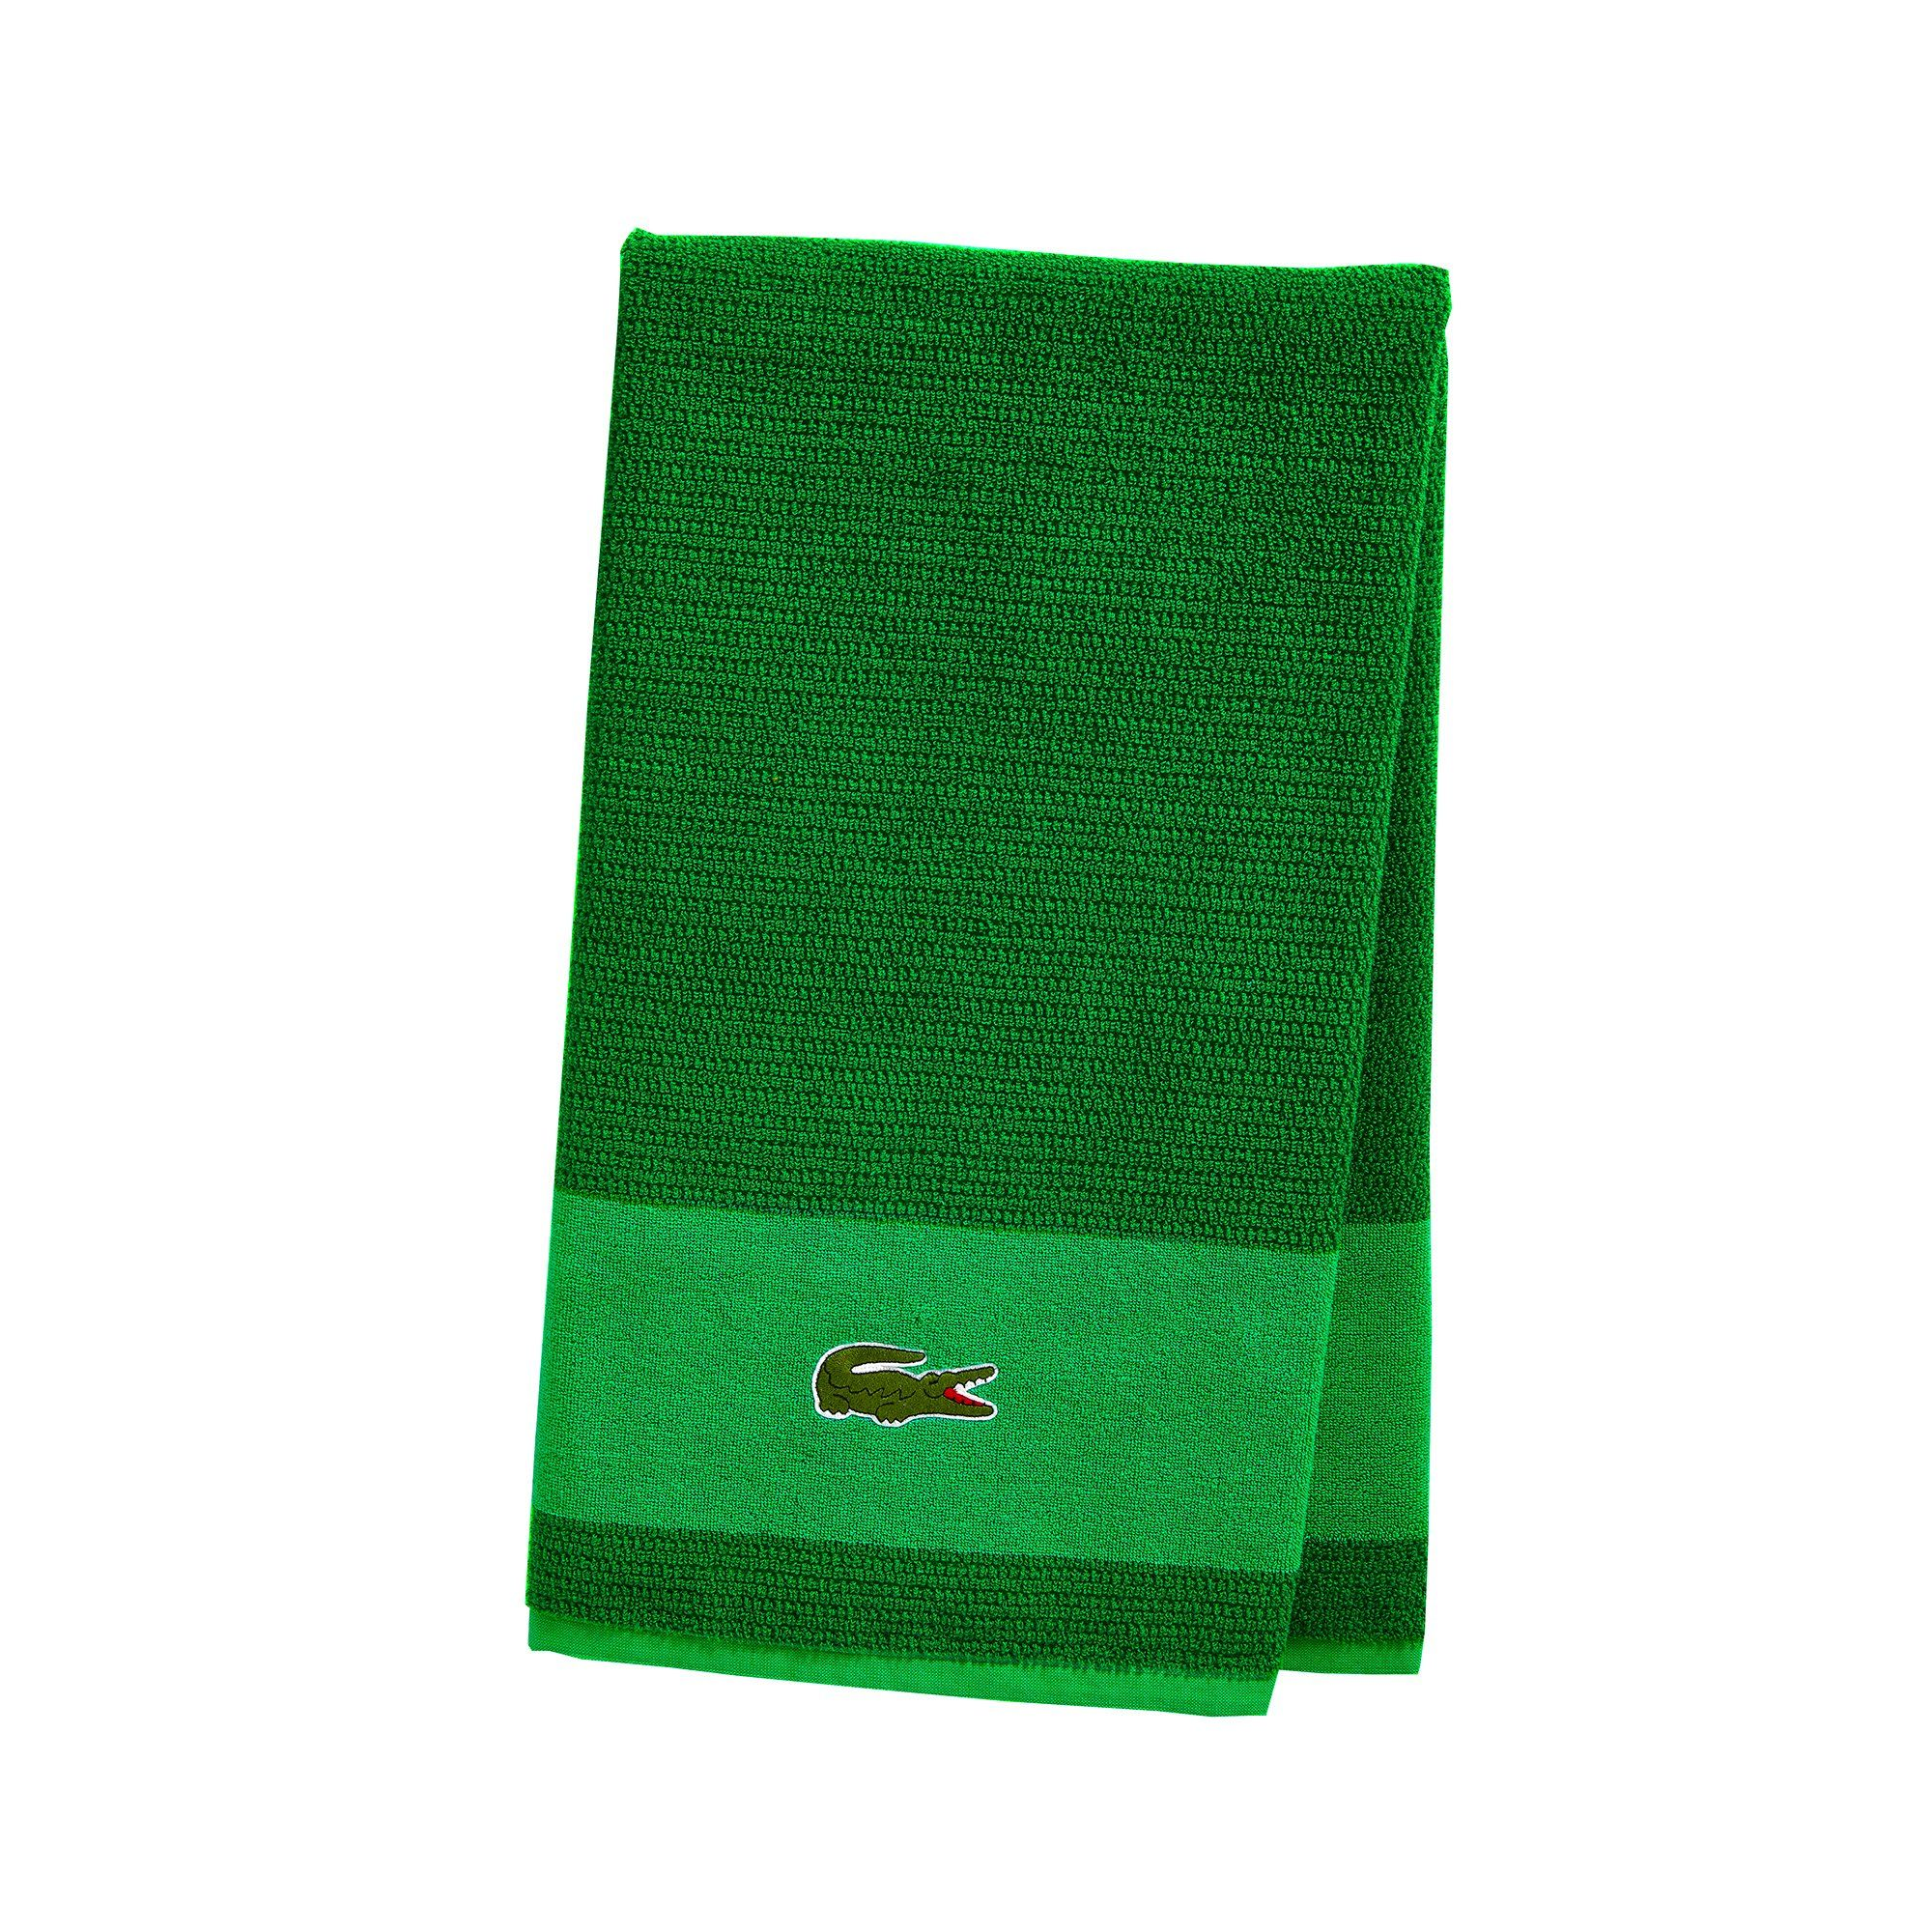 Lacoste Match Bath Towel 100 Cotton 600 Gsm 30 X52 Field Green